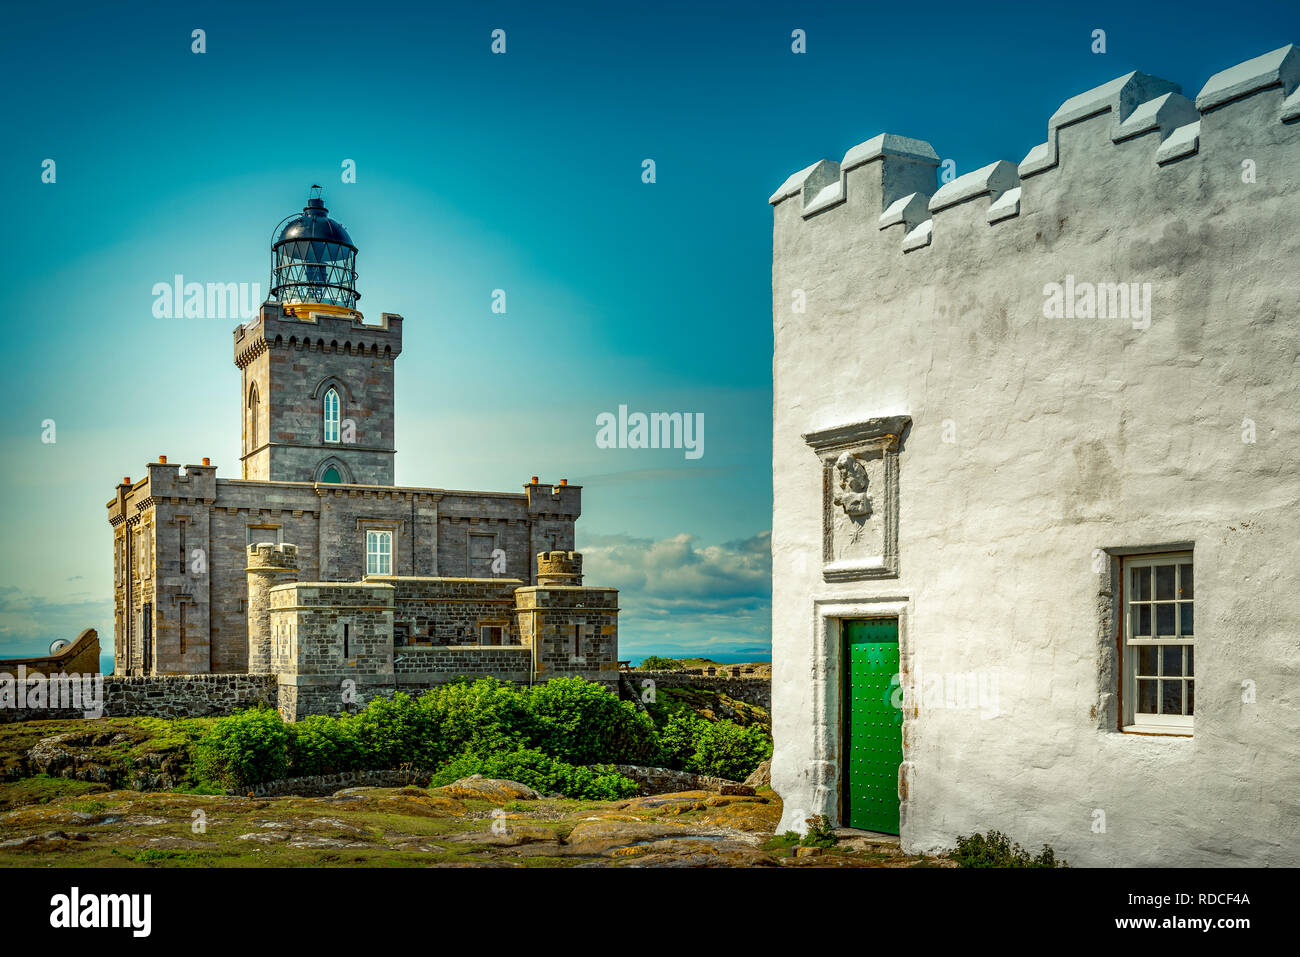 Europa, Großbritannien, Schottland, Küste, Küstenwanderweg, Fife Coastal Path, Insel, May, Leuchtturm, Northern Lighthouse - Stock Image